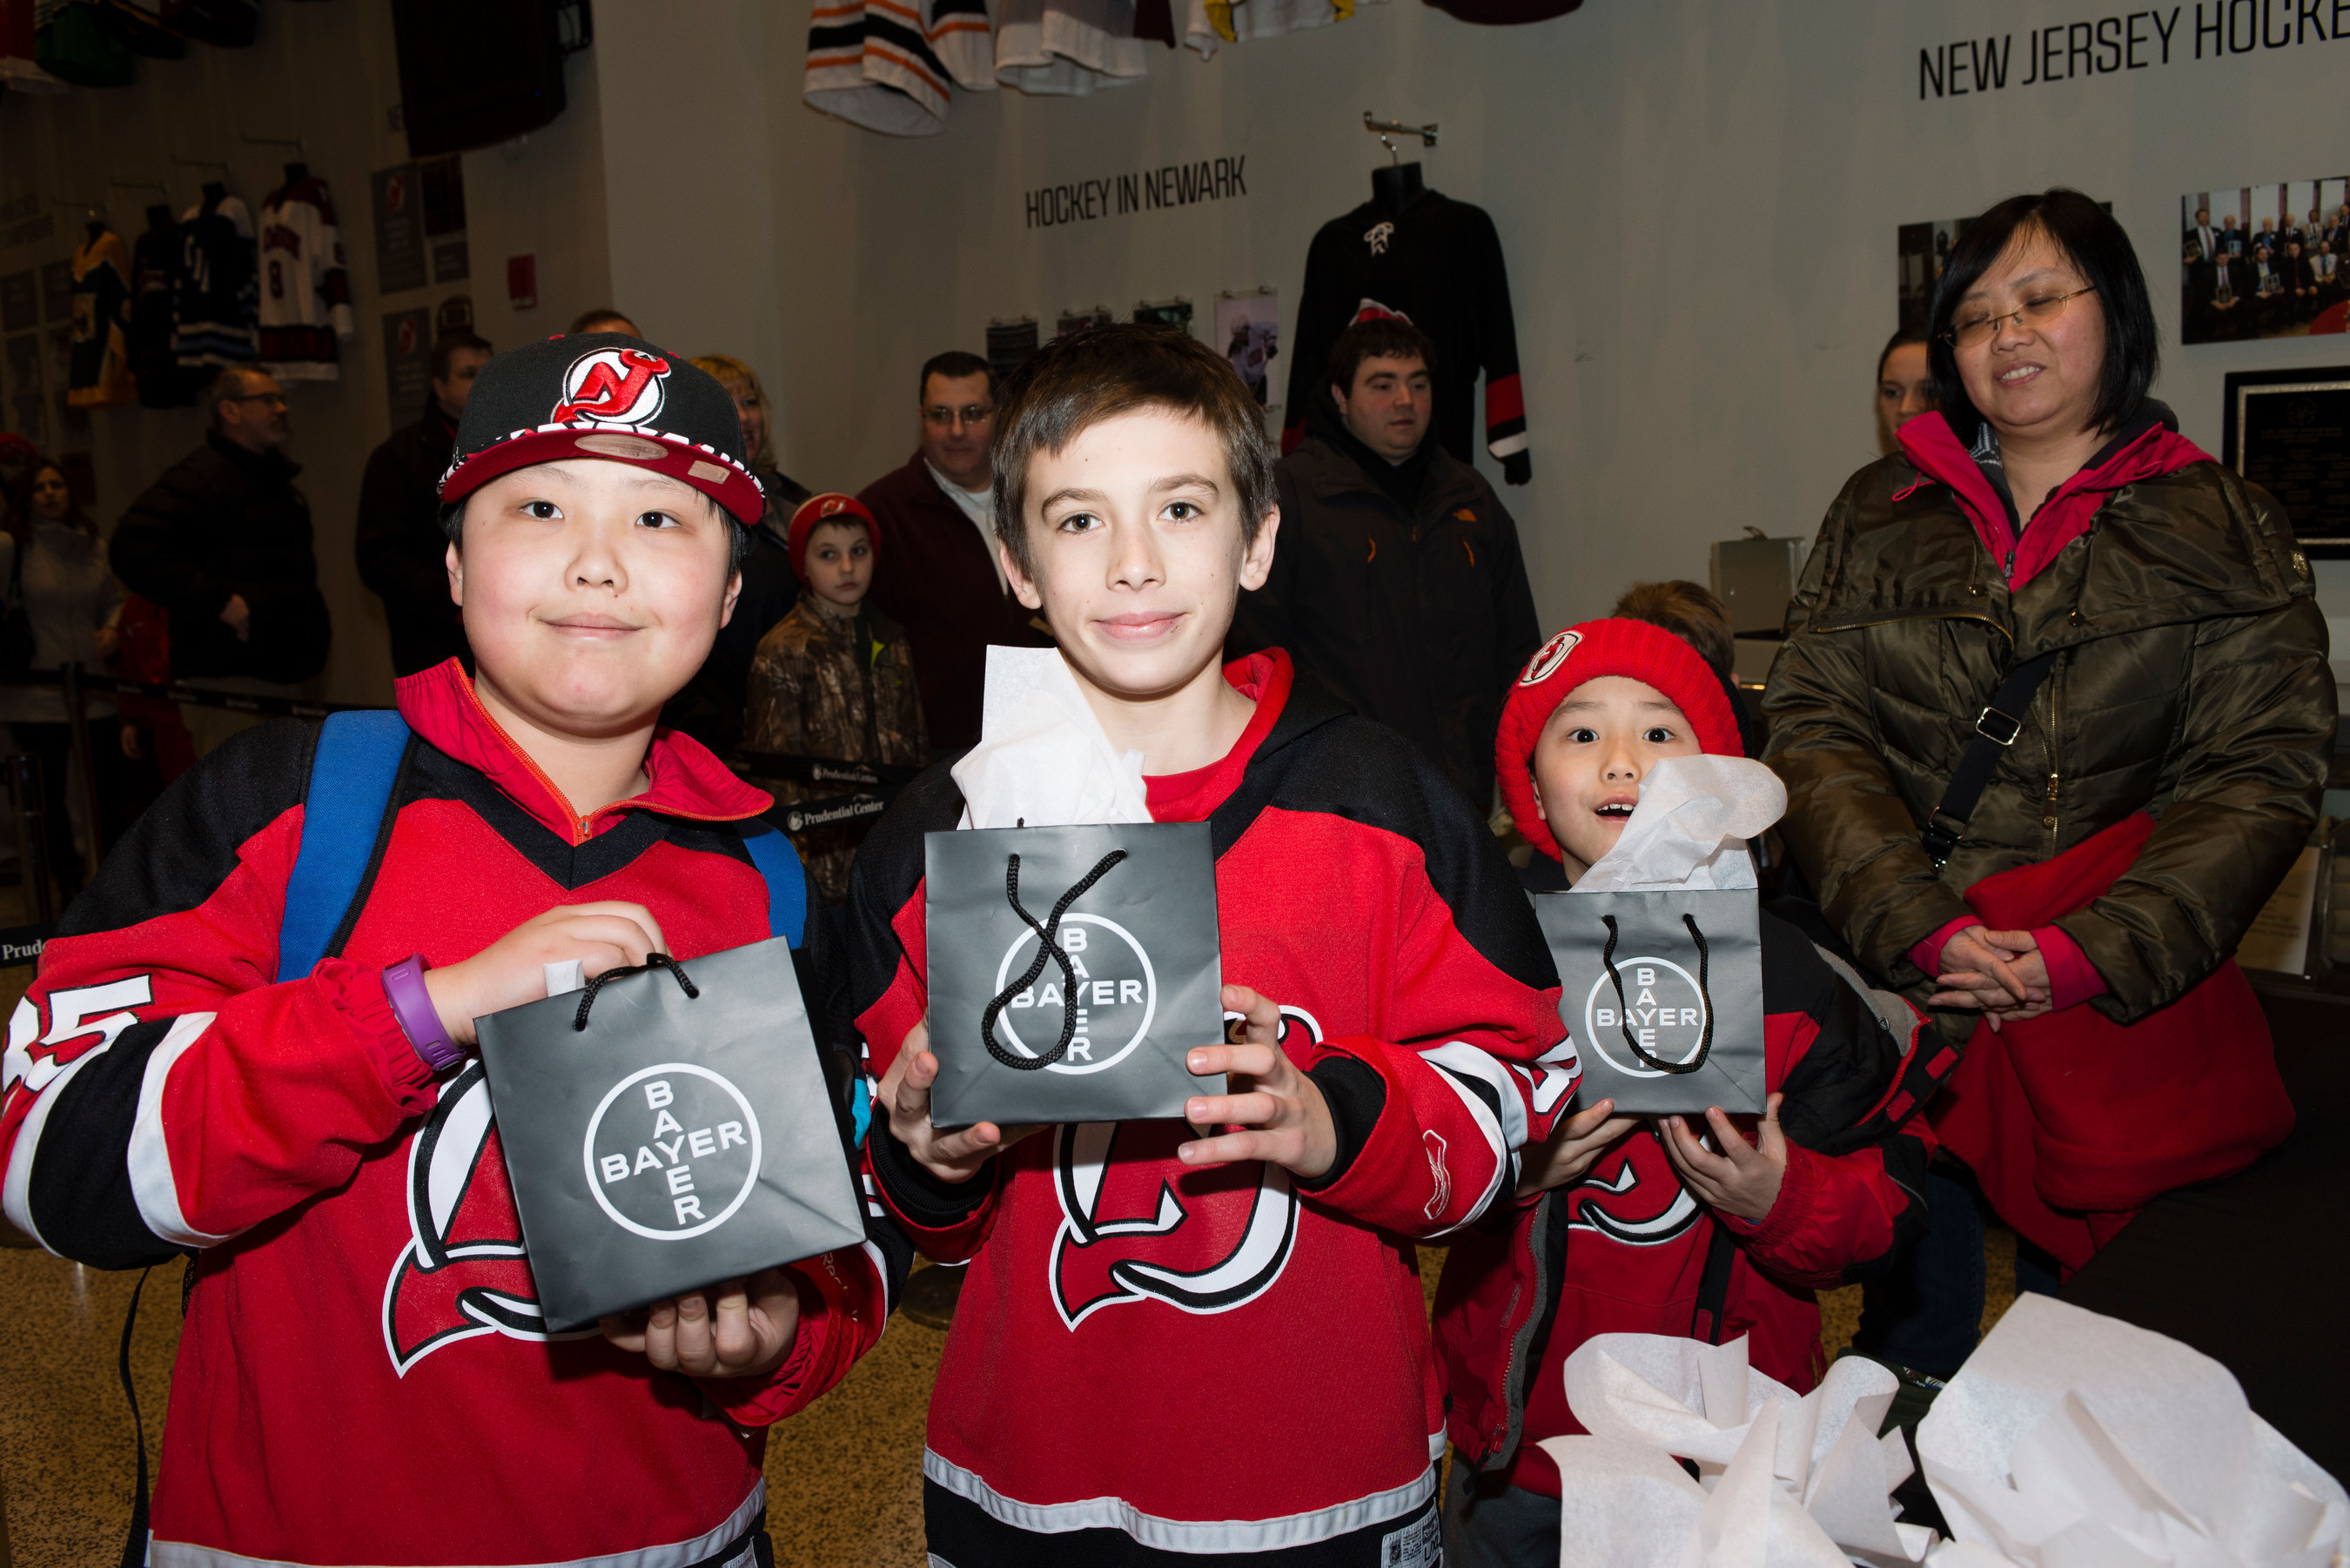 newest d6830 51202 Bayer Joins the New Jersey Devils in Helping Fight Cancer